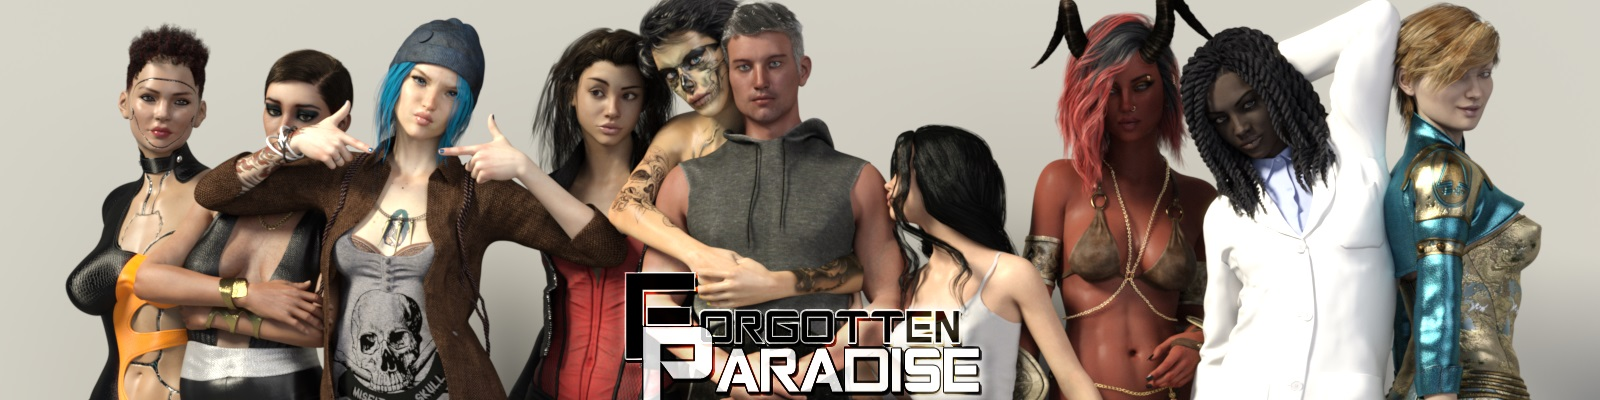 Forgotten Paradise - Version 0.14 (Pc, Mac)